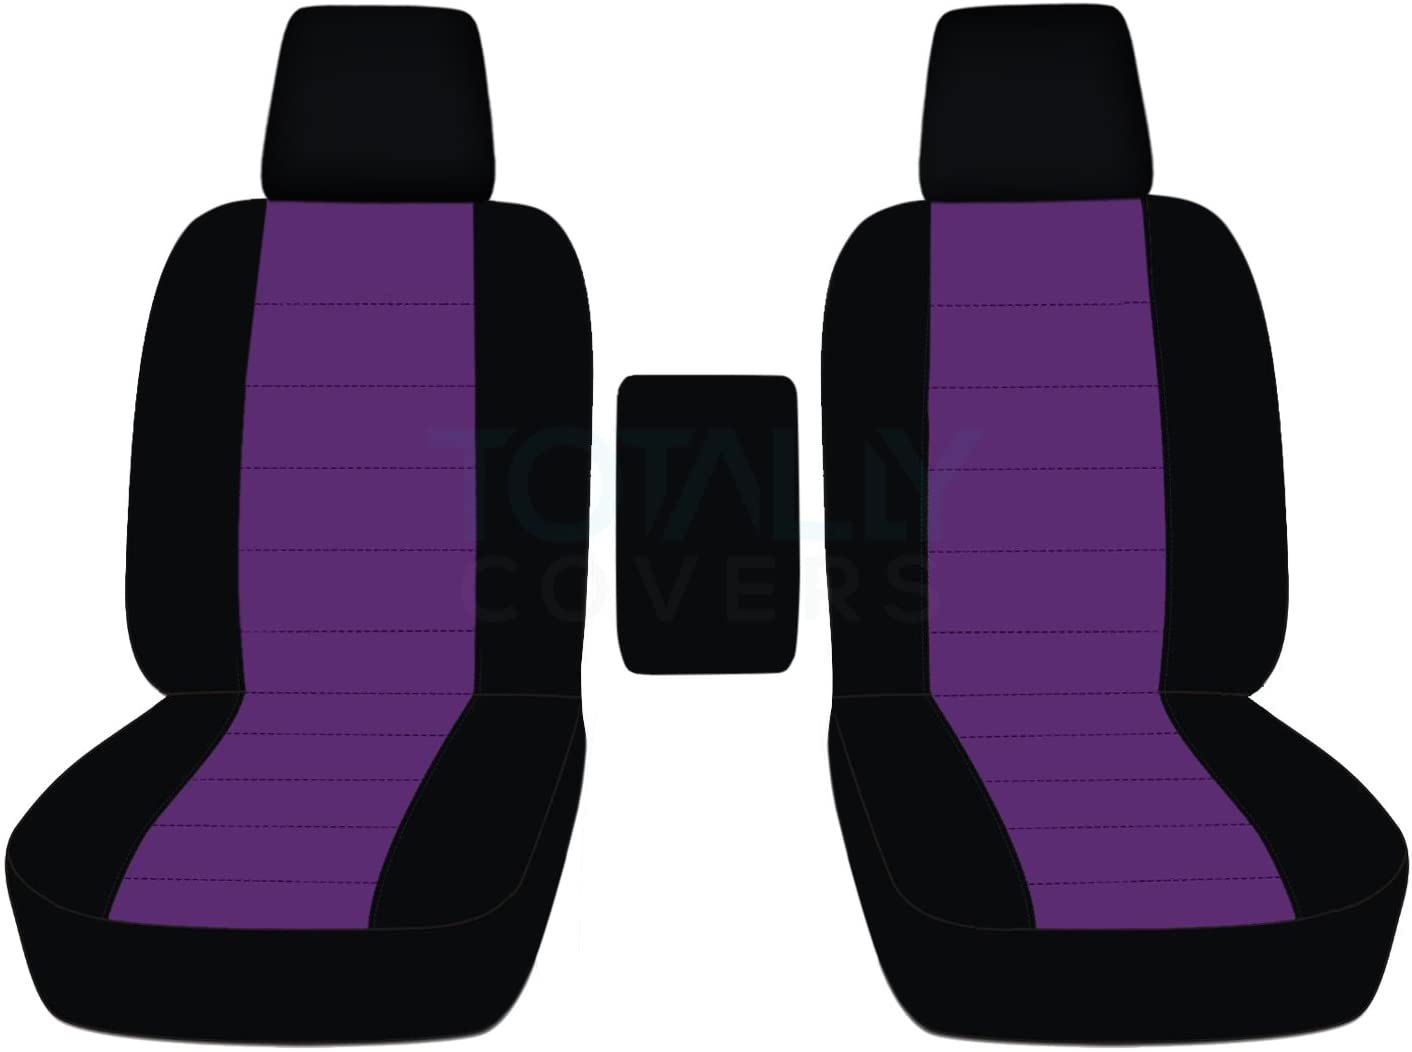 Totally Covers Compatible with 2004-2008 Ford F-150 Two-Tone Truck Bucket Seat Covers with Center Armrest, w/wo Integrated Seat Belts: Black & Purple (21 Colors) F-Series F150 Front